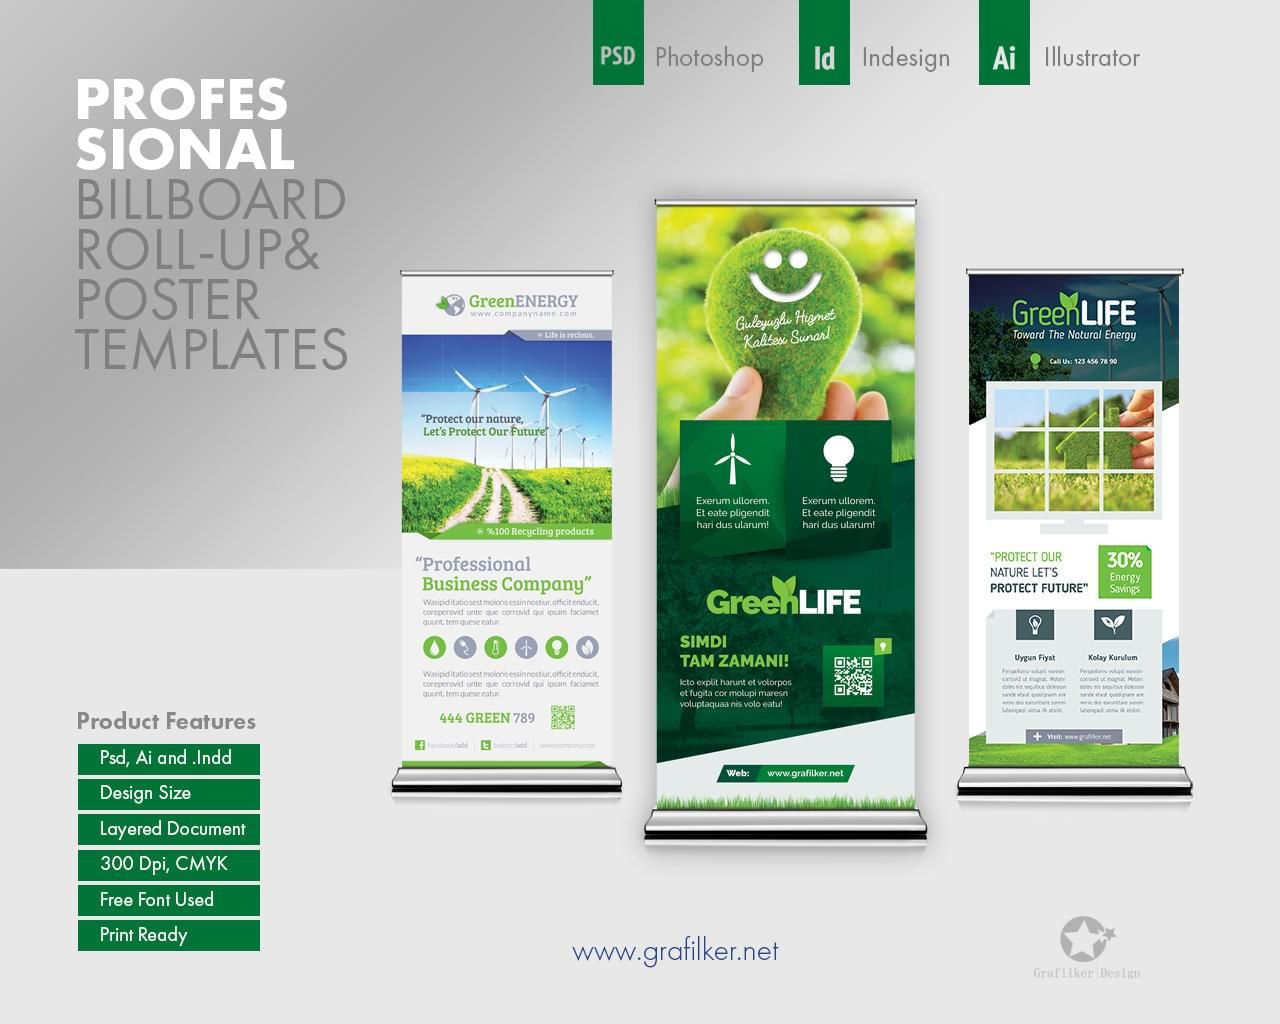 Professional Billboard Roll-Up Templates by grafilker - 112074